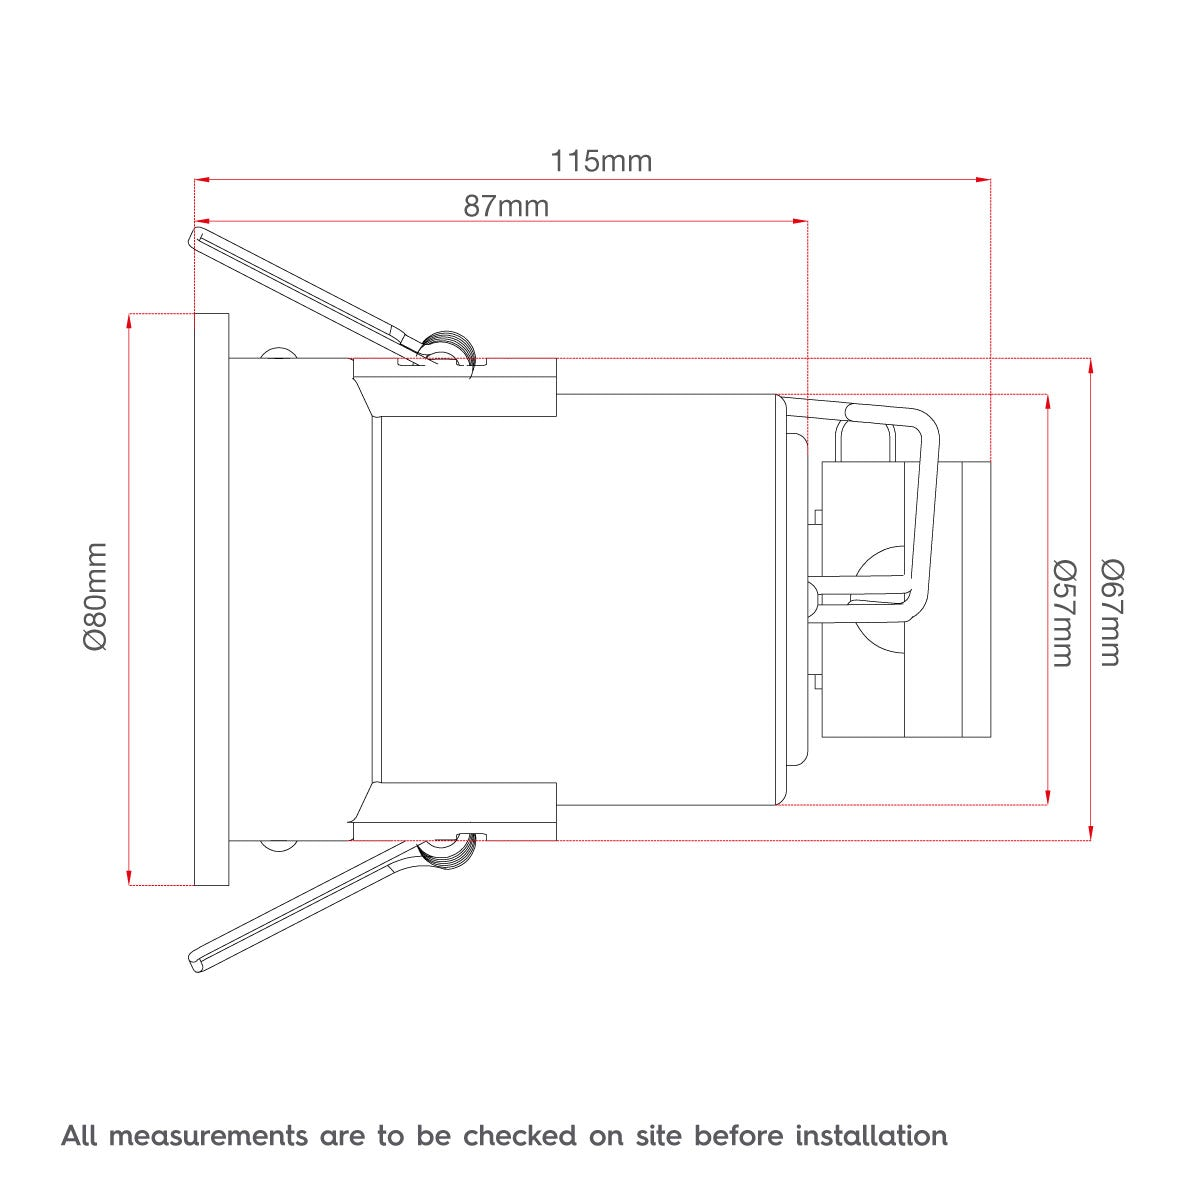 Dimensions for Fixed fire rated bathroom downlight in white